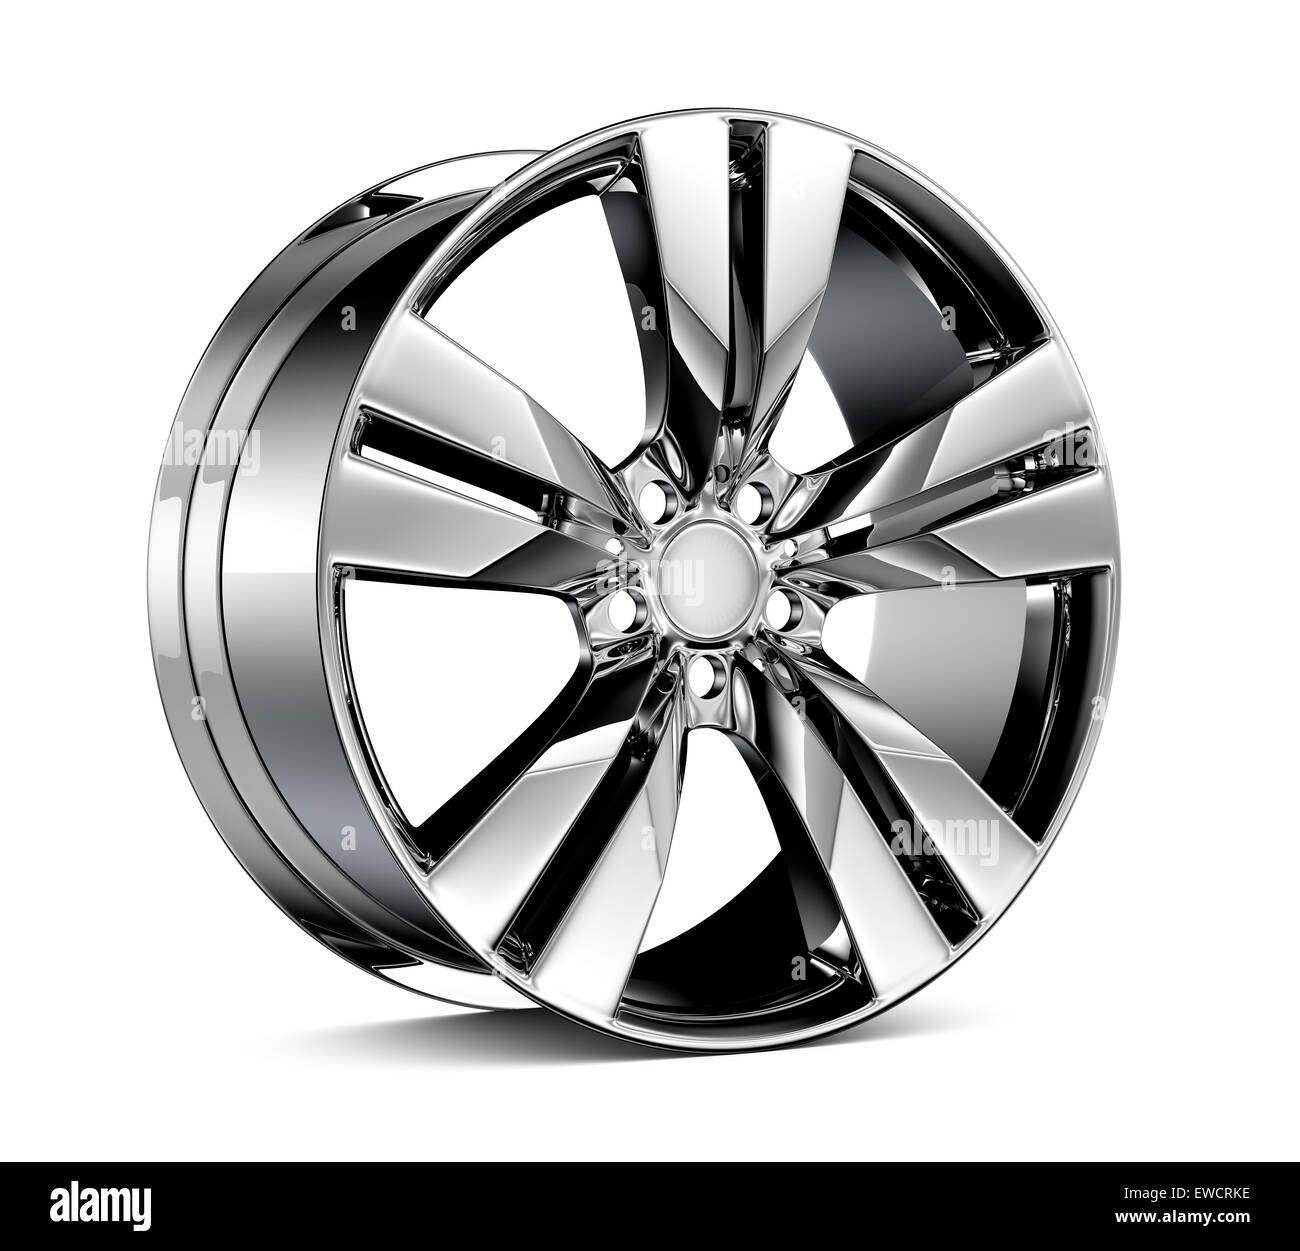 Alloy Wheel Rim isolated on white - Stock Image